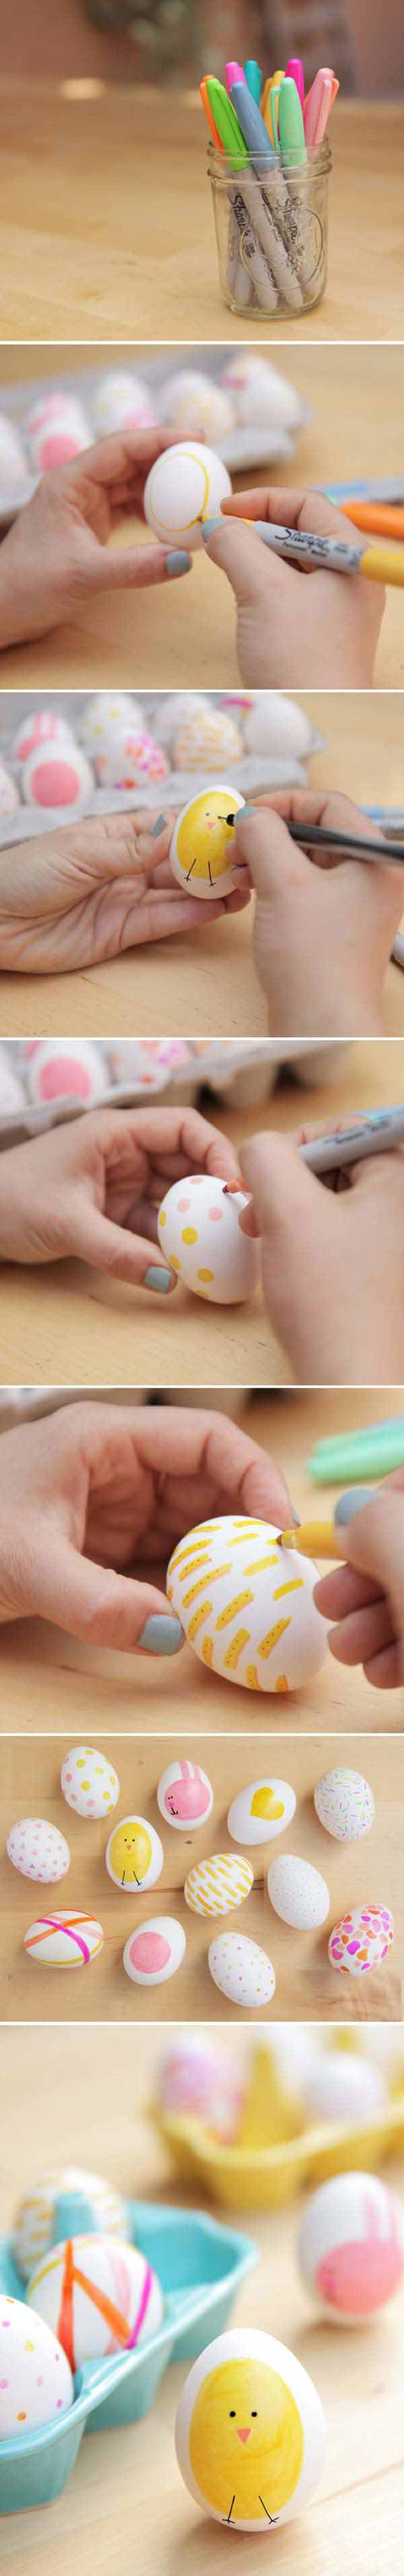 Use sharpies to decorate a few Easter eggs differently